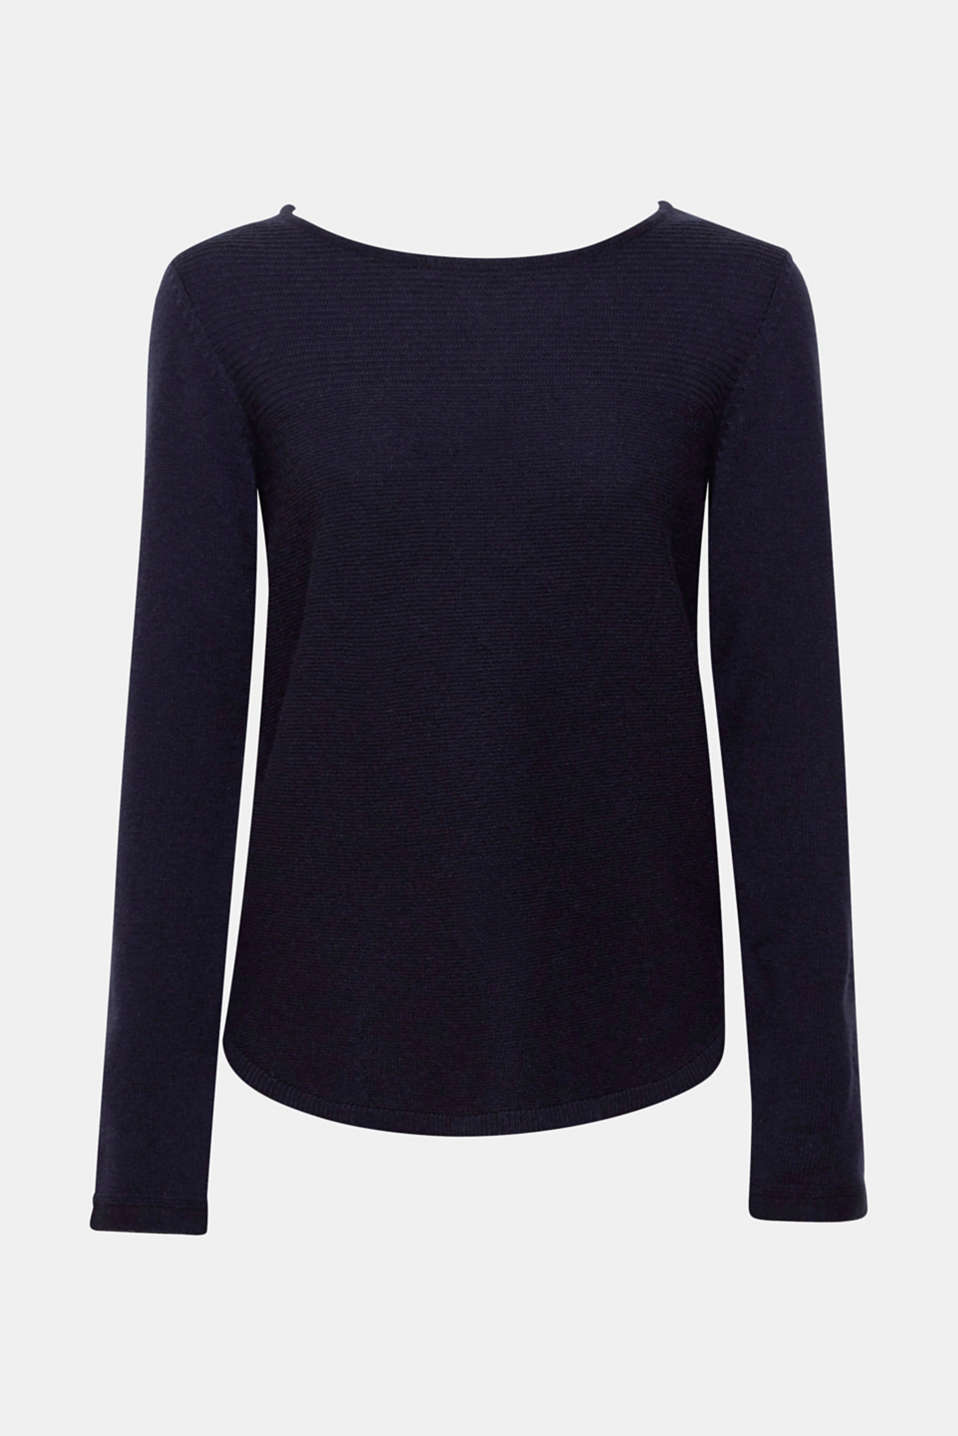 The clean design and quality fabric composed of wool and cashmere make this jumper a must-have piece for every winter wardrobe.